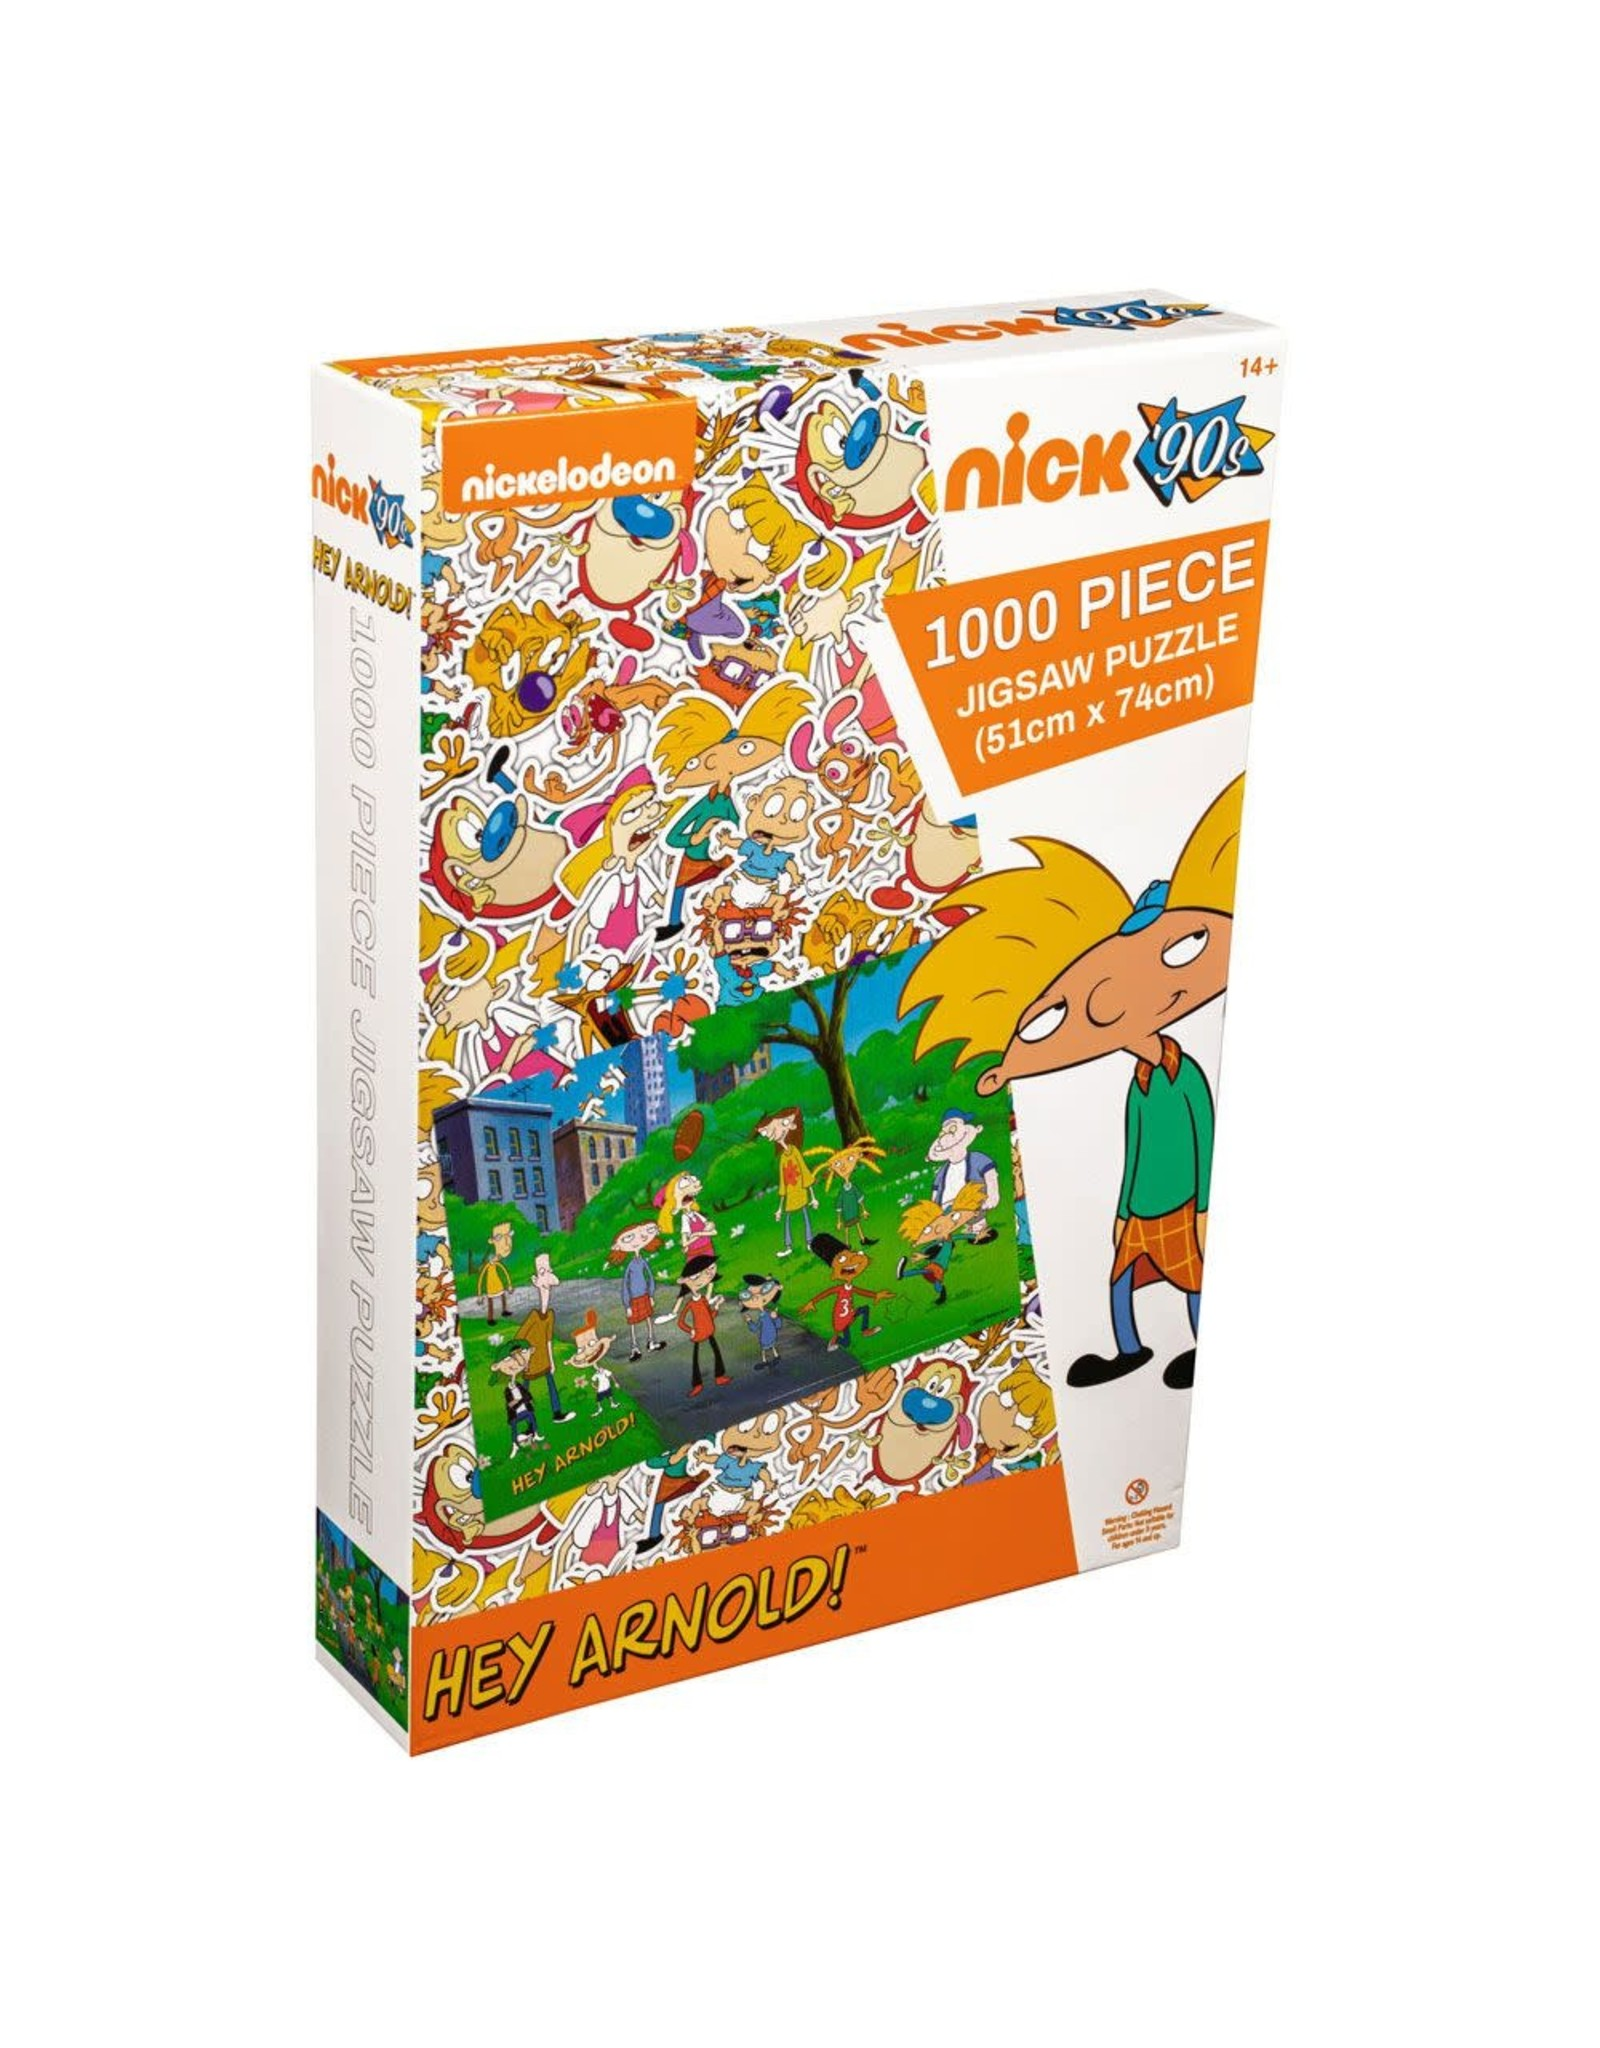 Ikon Collectables HEY ARNOLD! Puzzle 1000P - Park